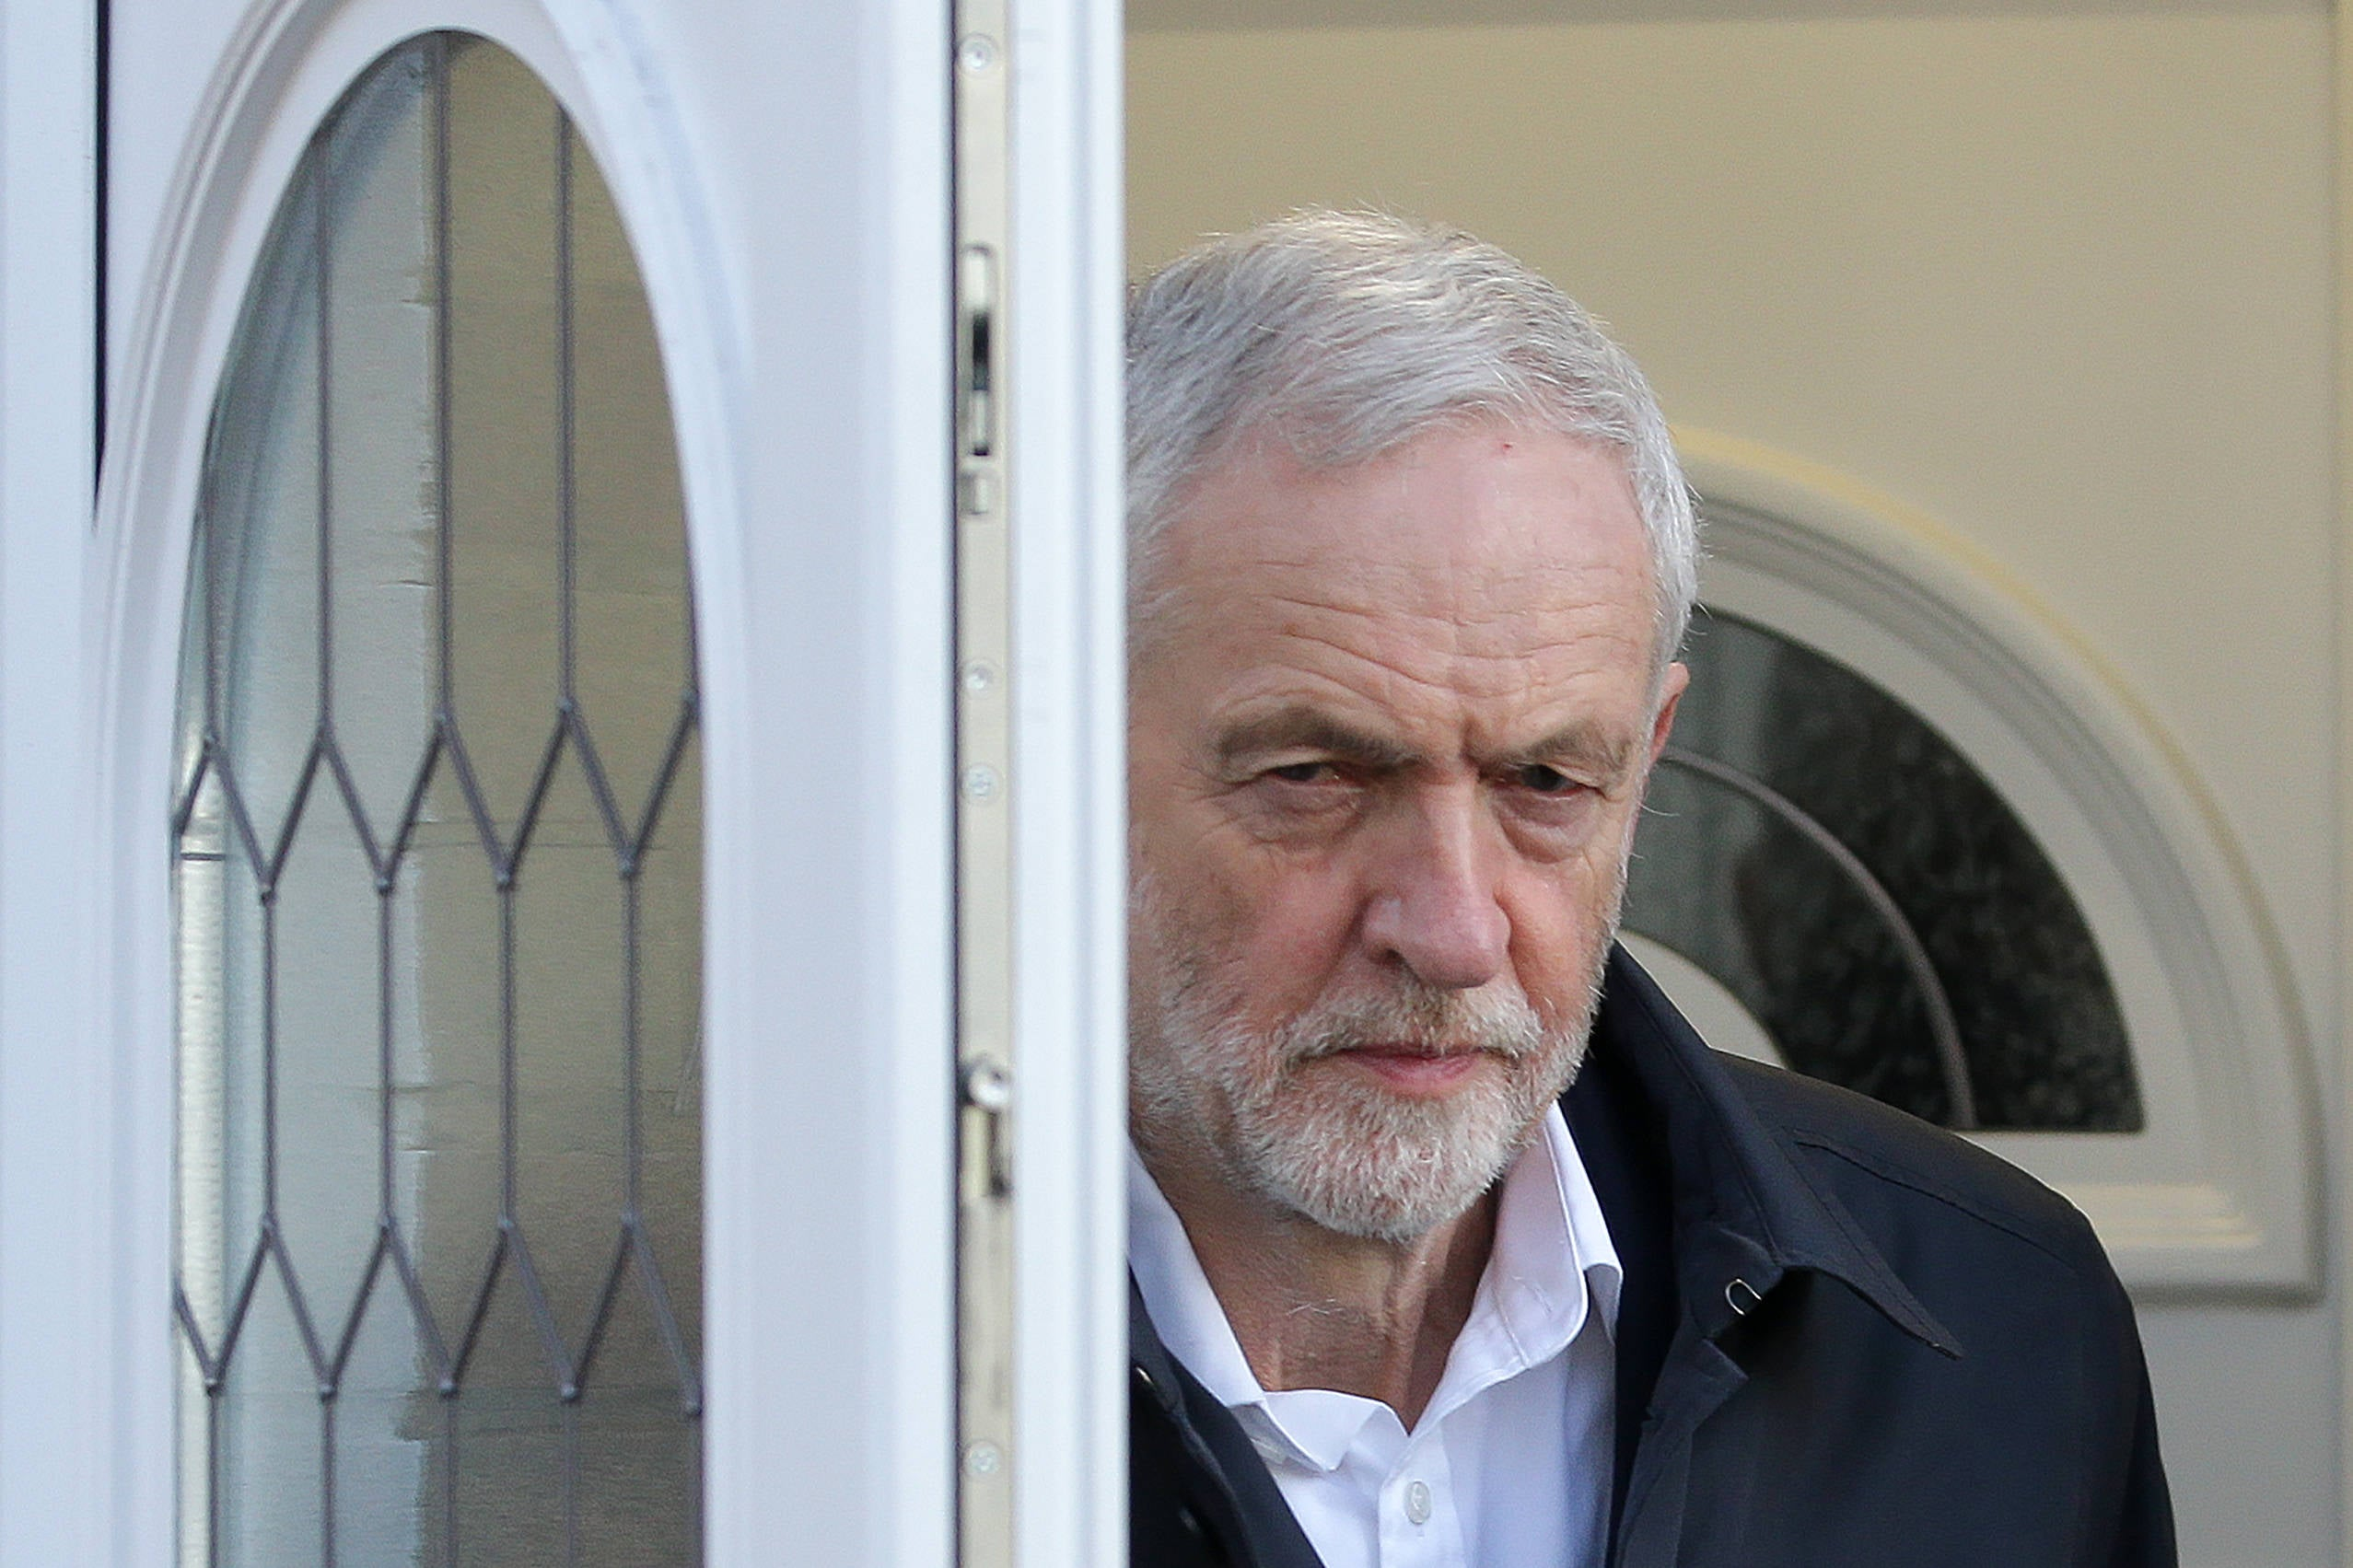 Commons Confidential: Jeremy Corbyn's missed meeting